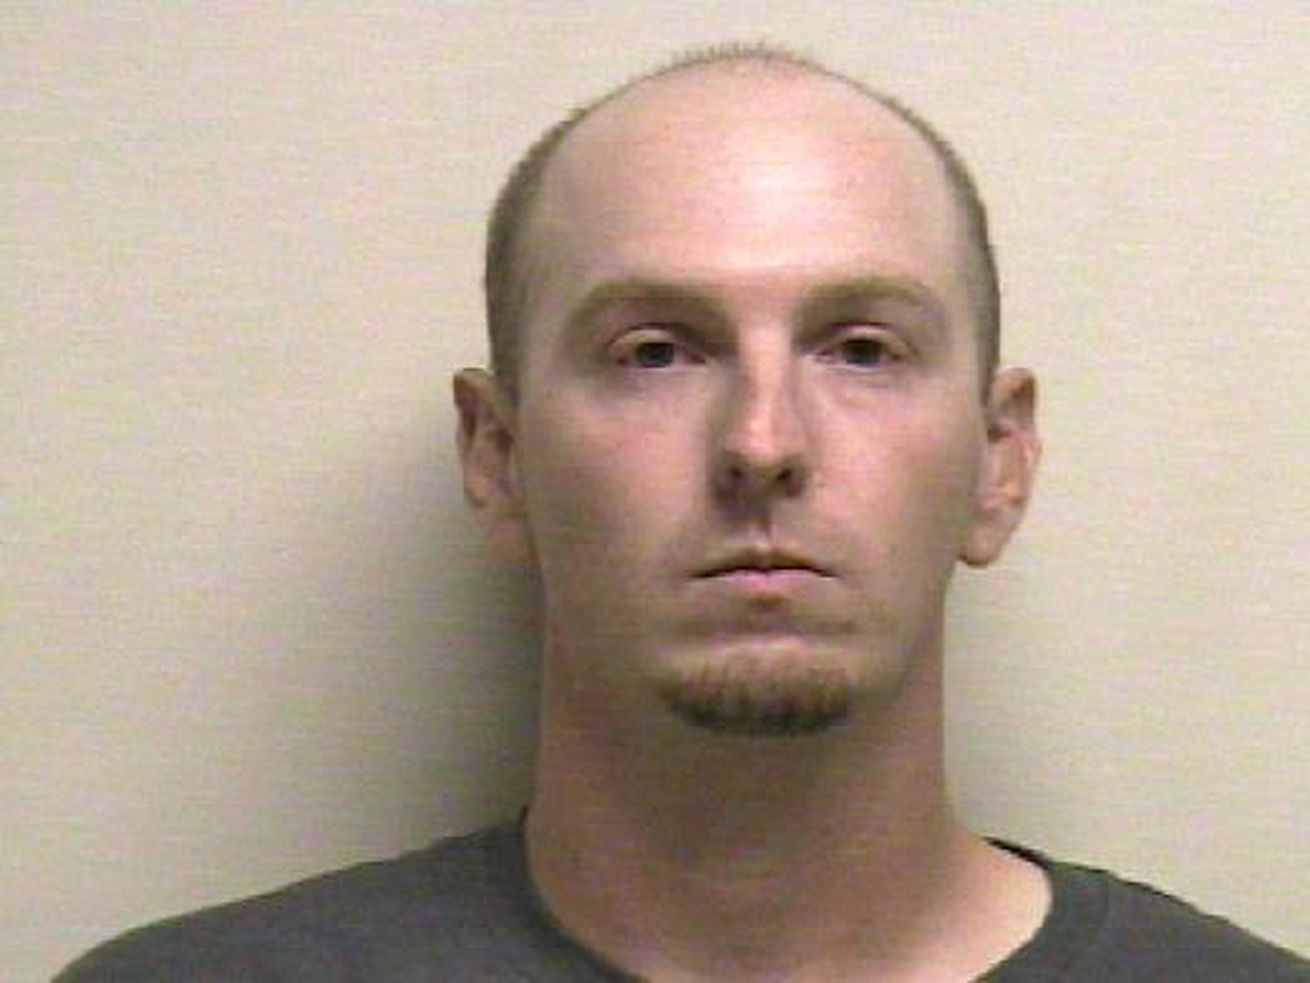 Austin James Corry, 26, the assistant chief of the Kanosh Fire Department in Millard County, was charged Wednesday with two counts of rape and two counts of object rape, first-degree felonies; five counts of forcible sexual abuse, a second-degree felony;